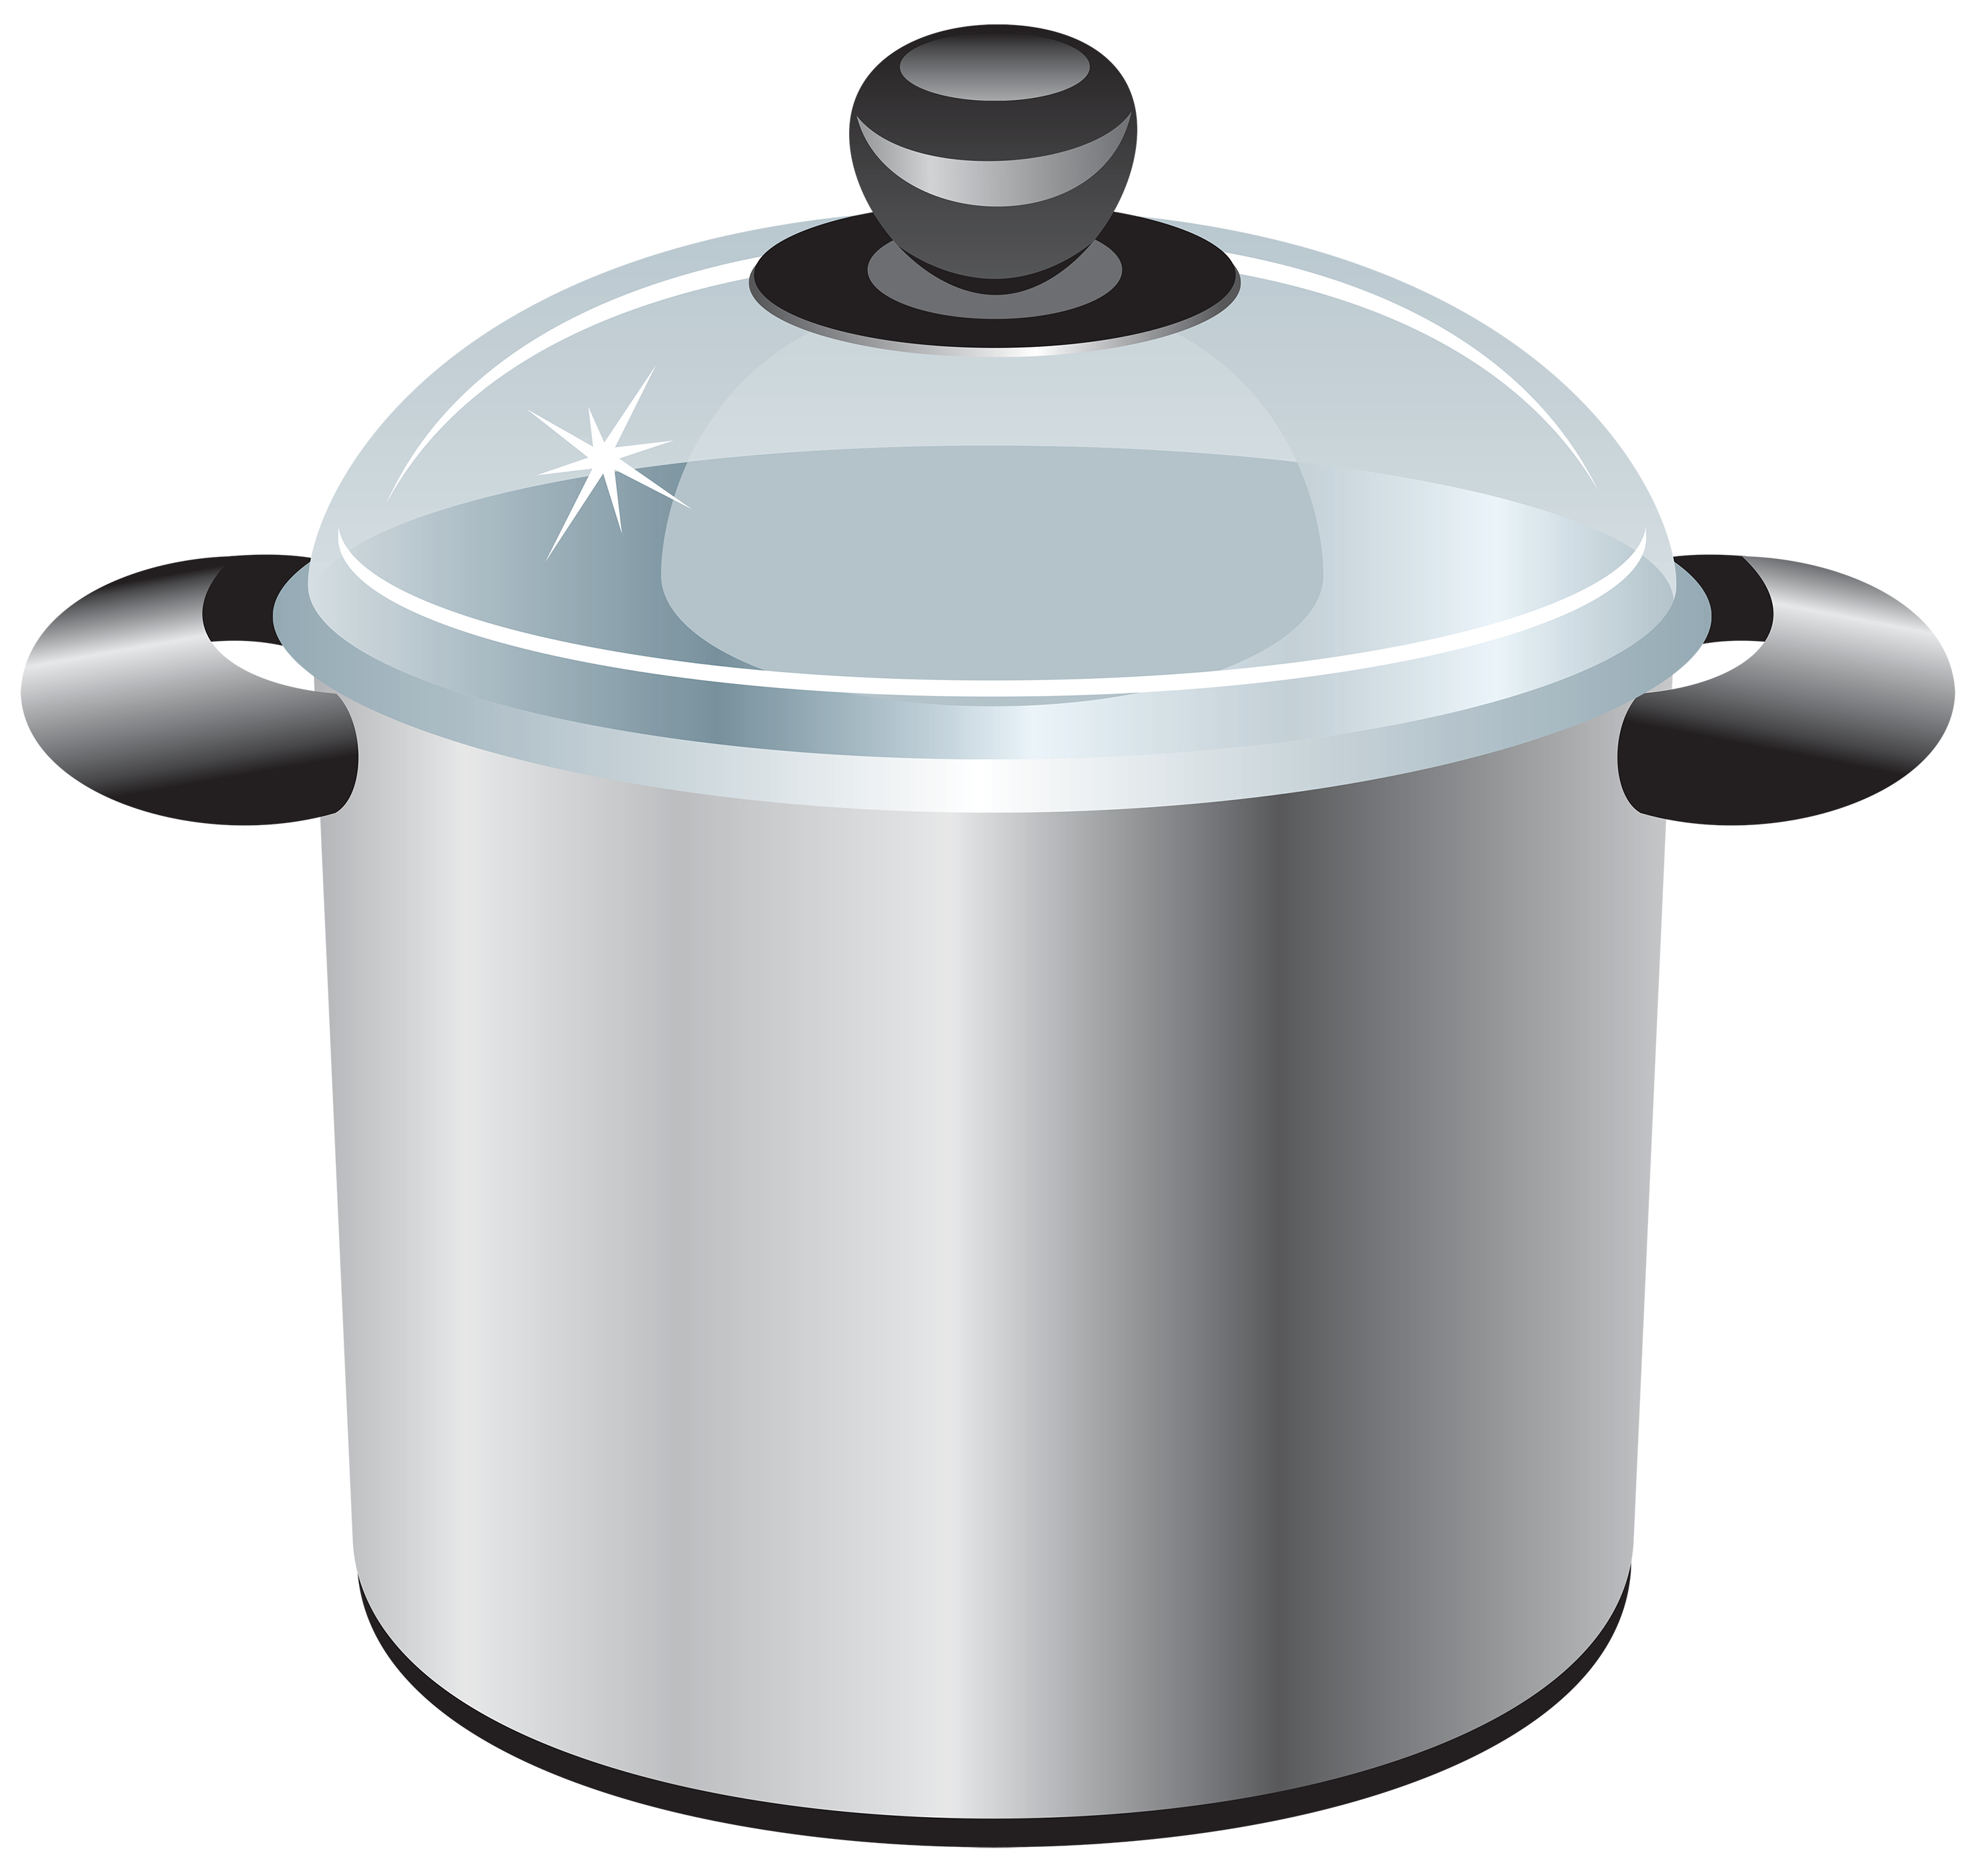 Silver Cooking Pot Clipart.